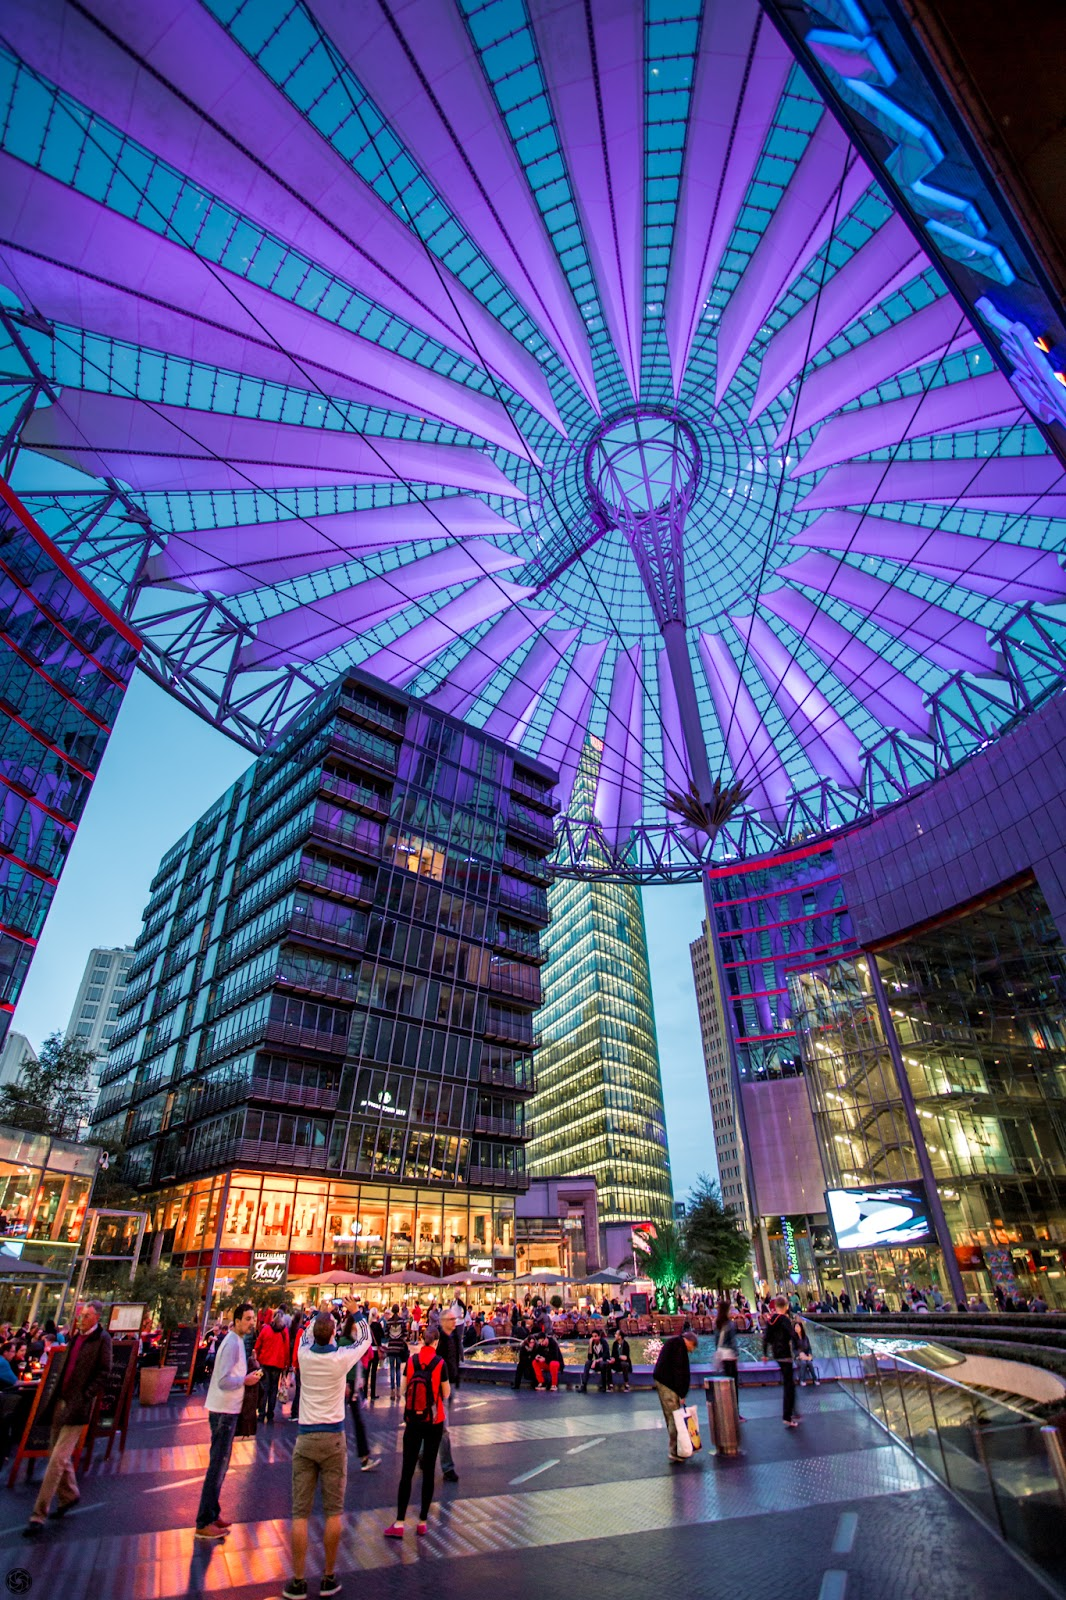 Sony Center - Blue hour :: Canon EOS5D MkIII | ISO1600 | Canon17-40 @17mm | f/4.0 | 1/15s